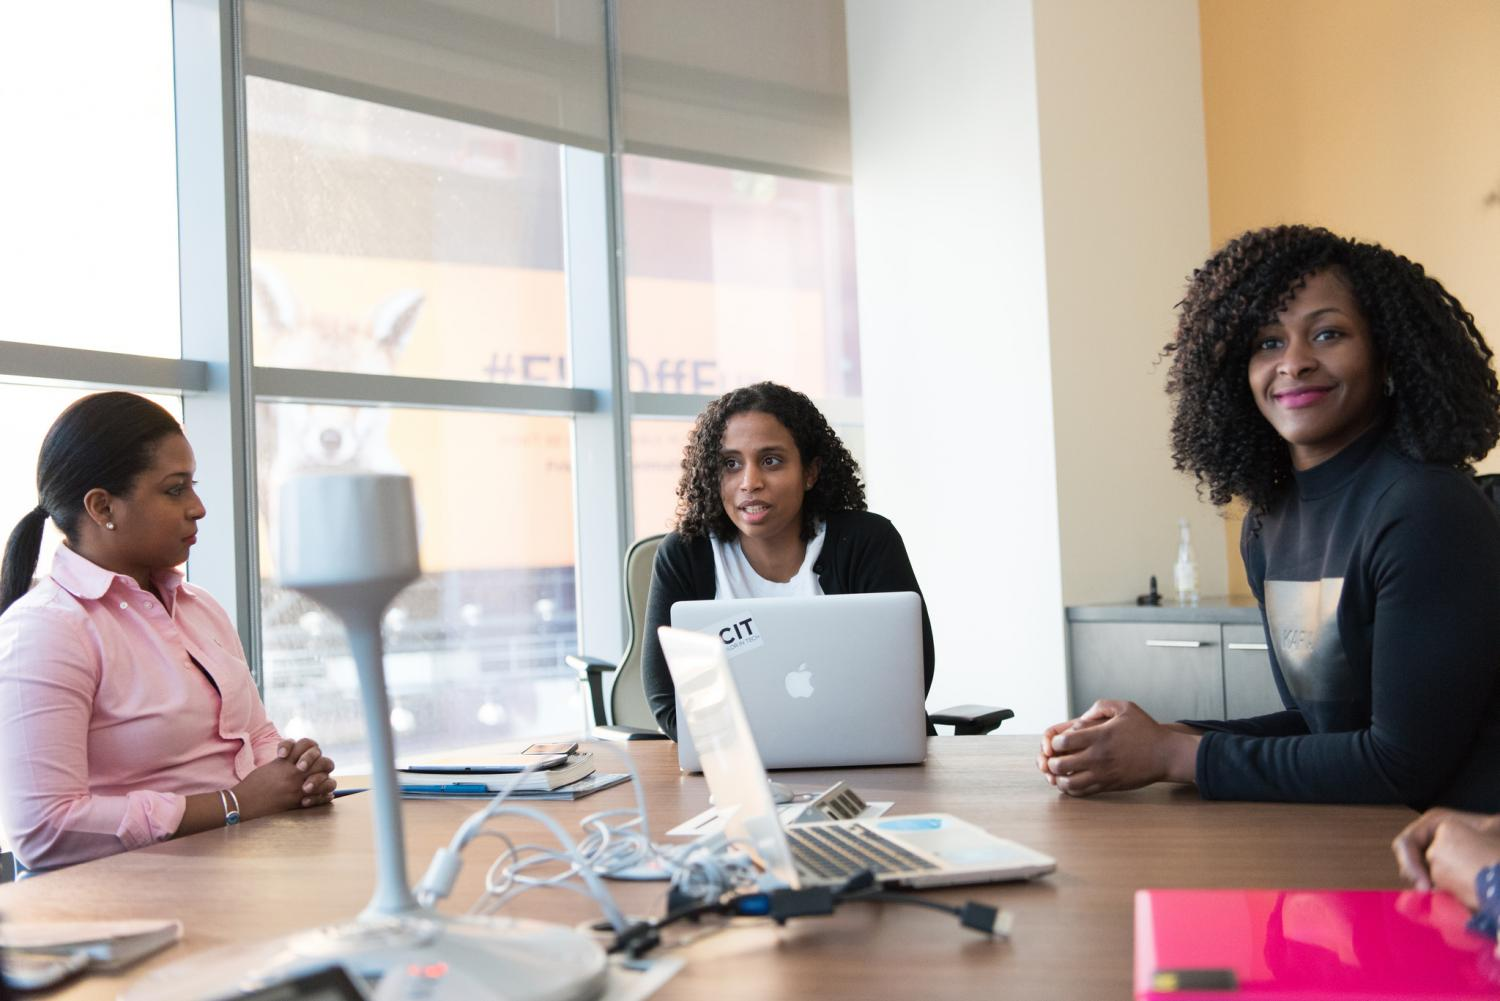 As women take impact investing by storm, the ripple effects are leading to more women in finance assuming leadership roles, with more female entrepreneurs reaping the benefits.